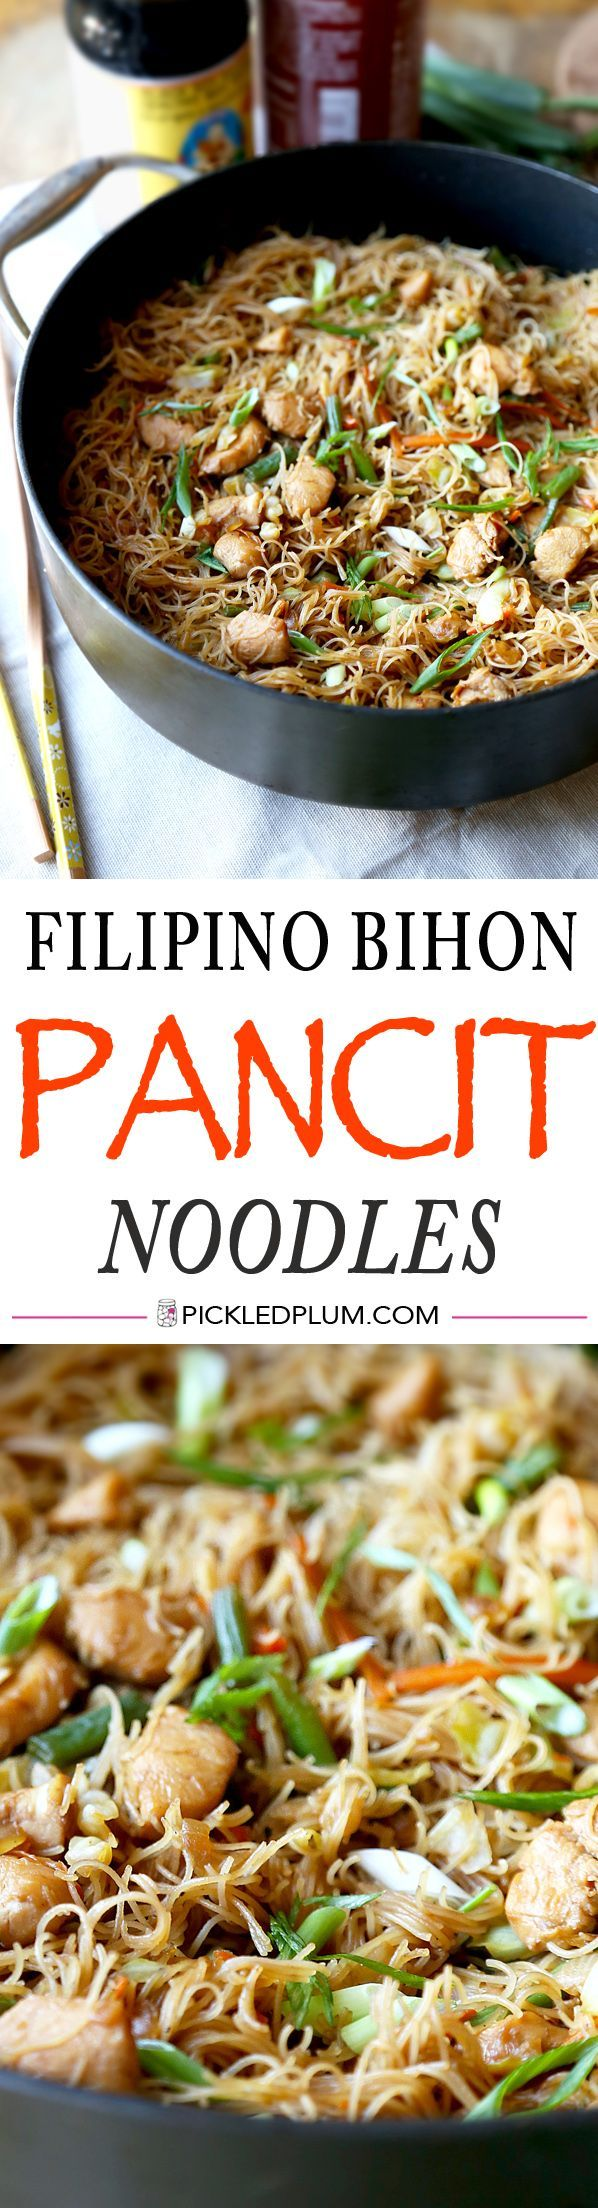 Filipino Bihon Pancit Noodles - Sweet, savory, Easy and ready in less than 25 minutes!